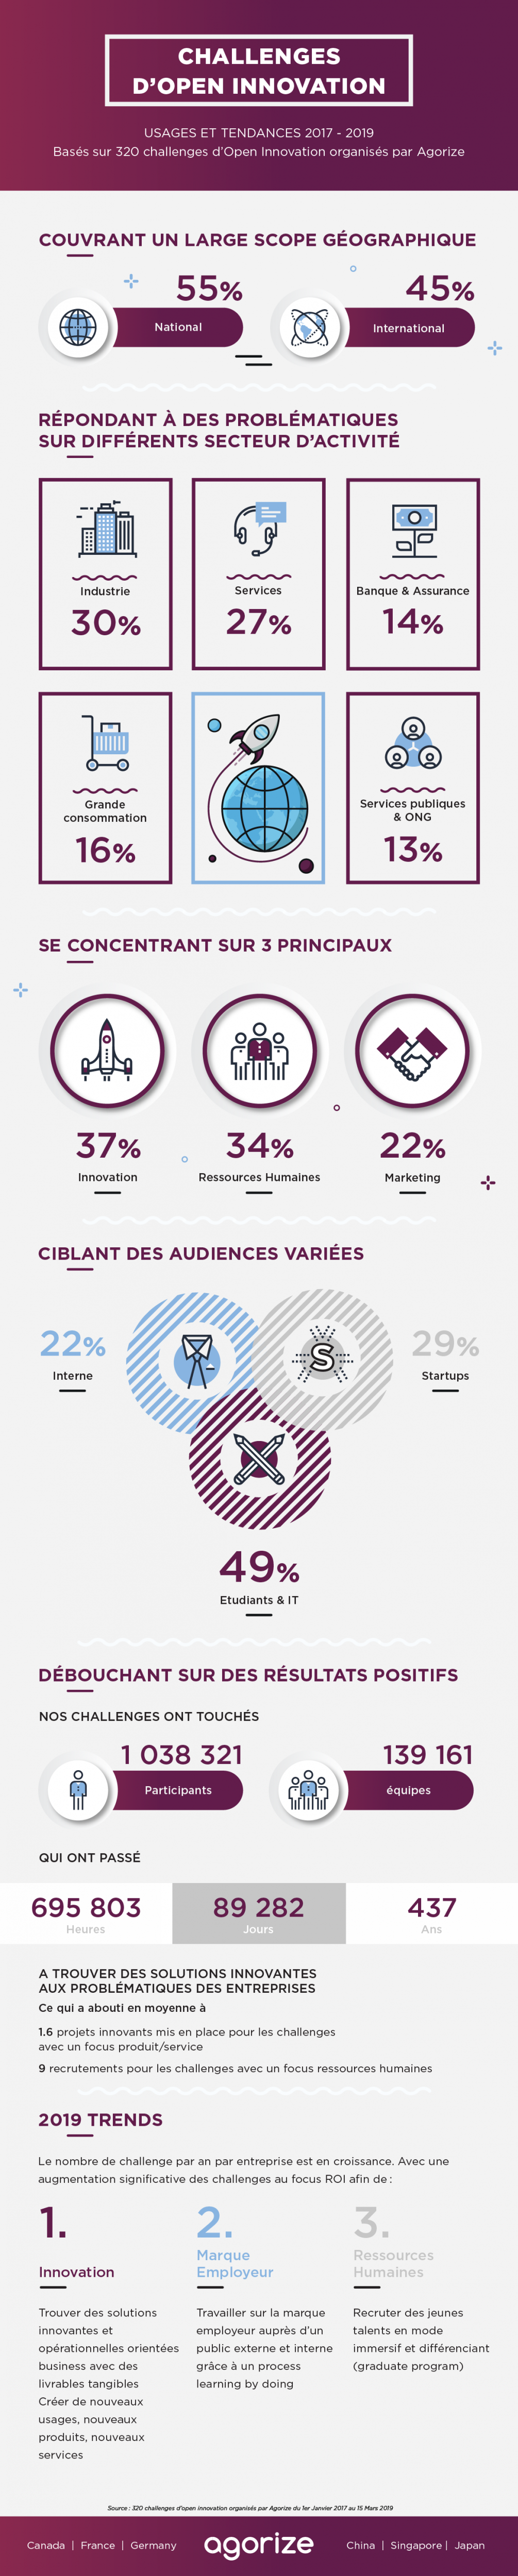 Infographie-open innovation